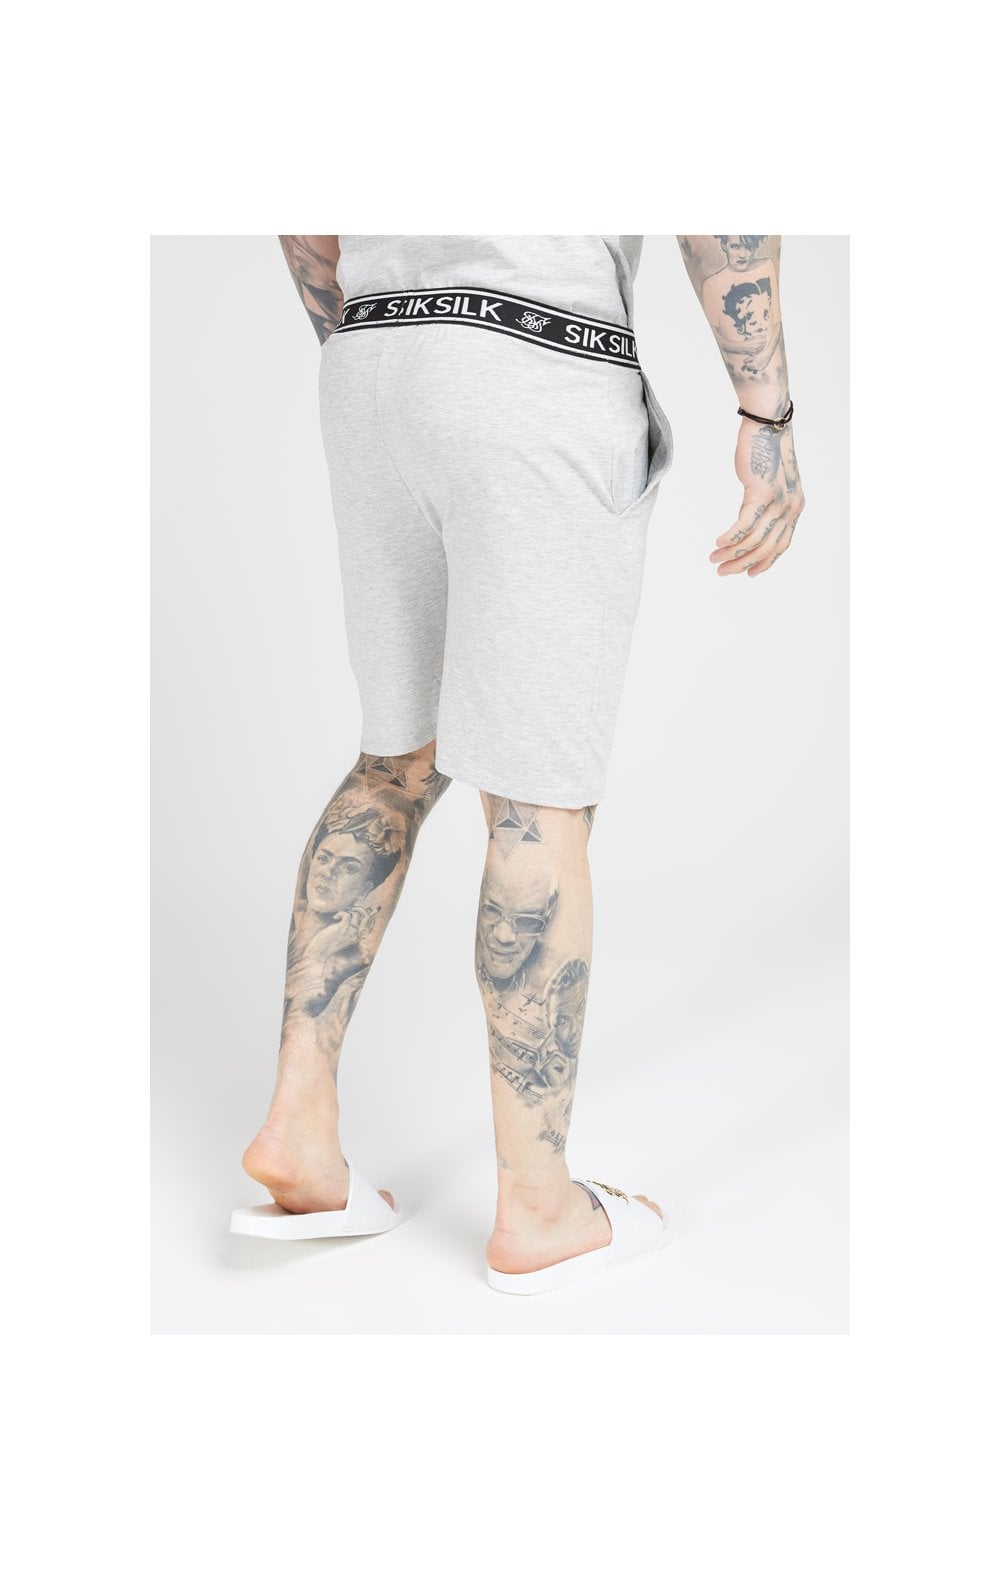 SikSilk Loose Fit Jersey Shorts - Grey Marl (2)